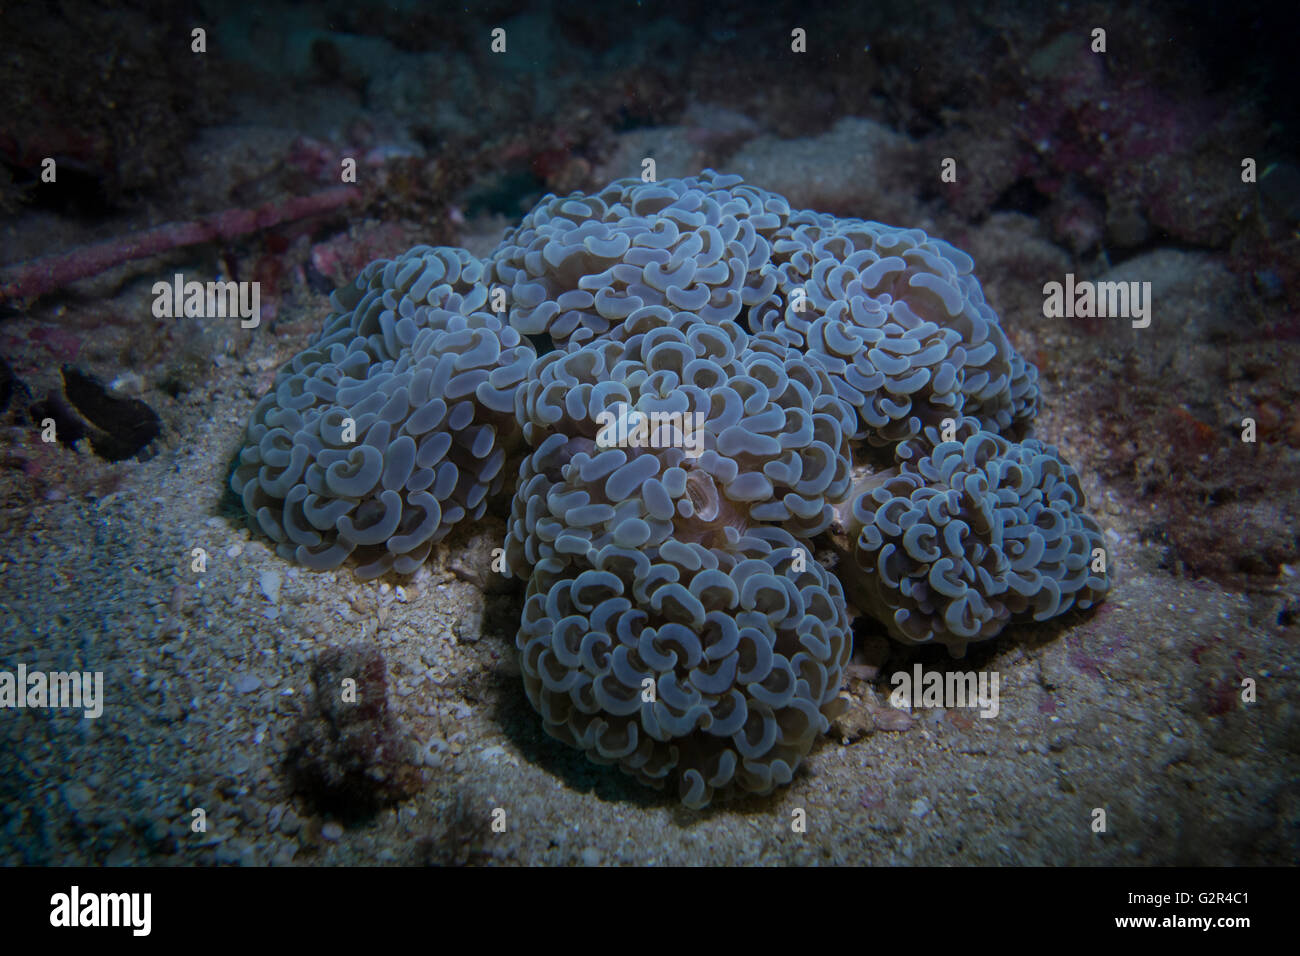 Anchor or hammer coral, Euphyllia parancora, from the Coral Triangle, South China Sea, Brunei. - Stock Image